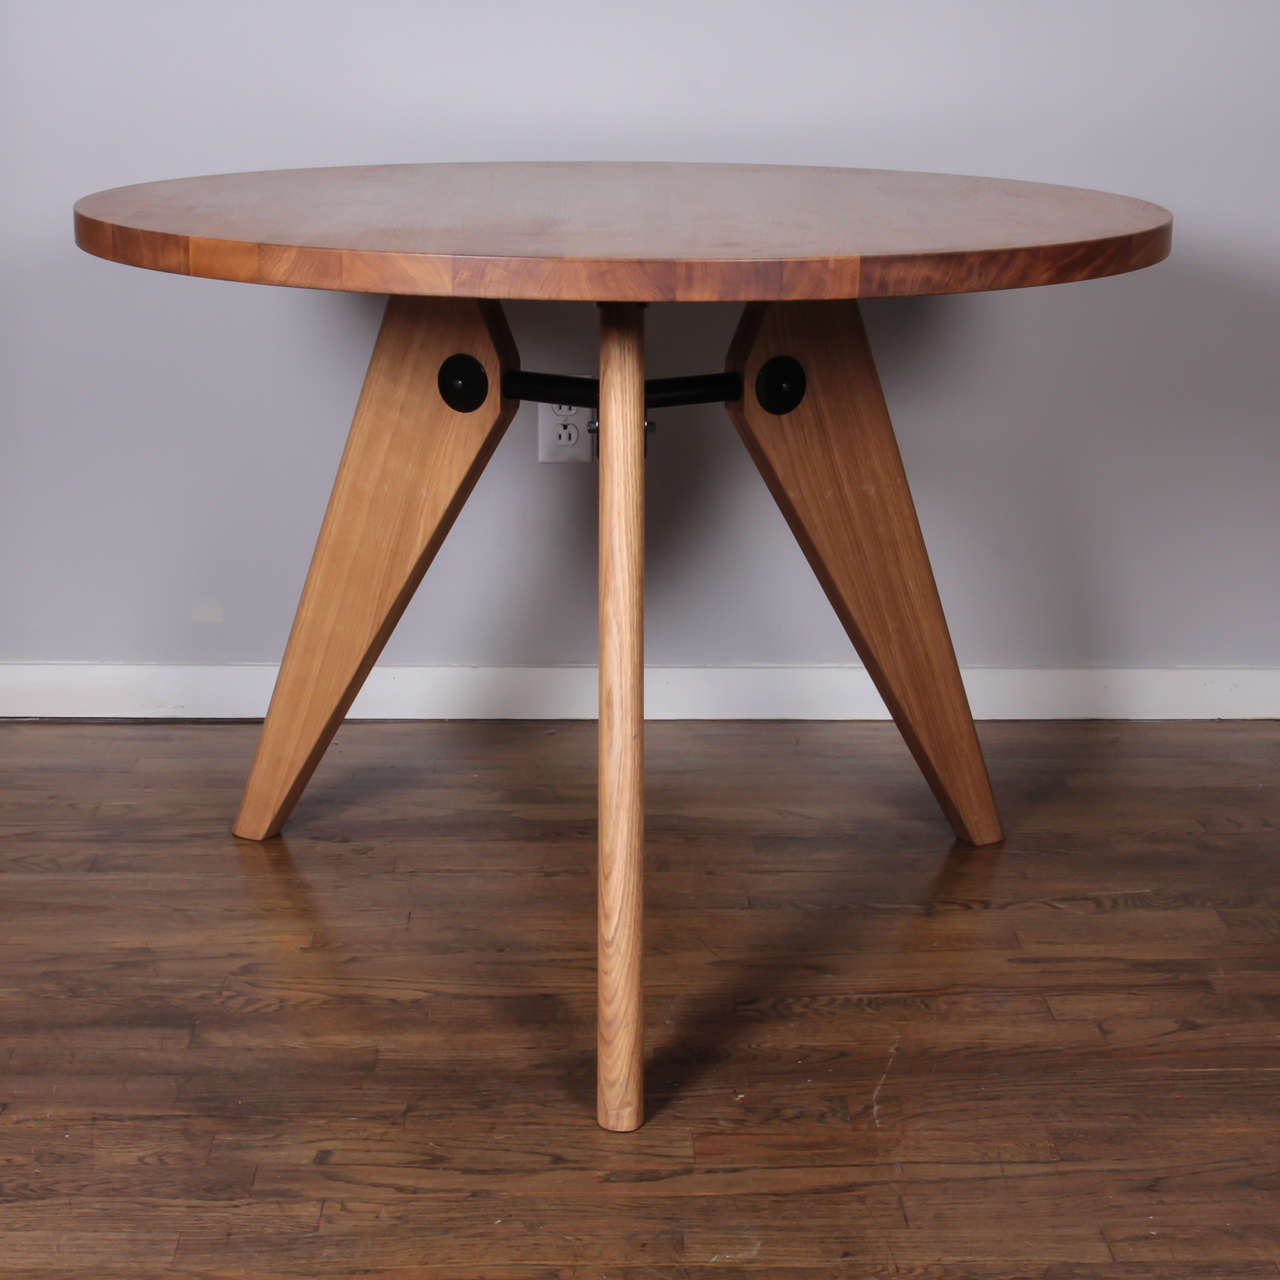 Jean Prouve Gueridon Dining Table Produced by Vitra at 1stdibs : B from www.1stdibs.com size 1280 x 1280 jpeg 87kB